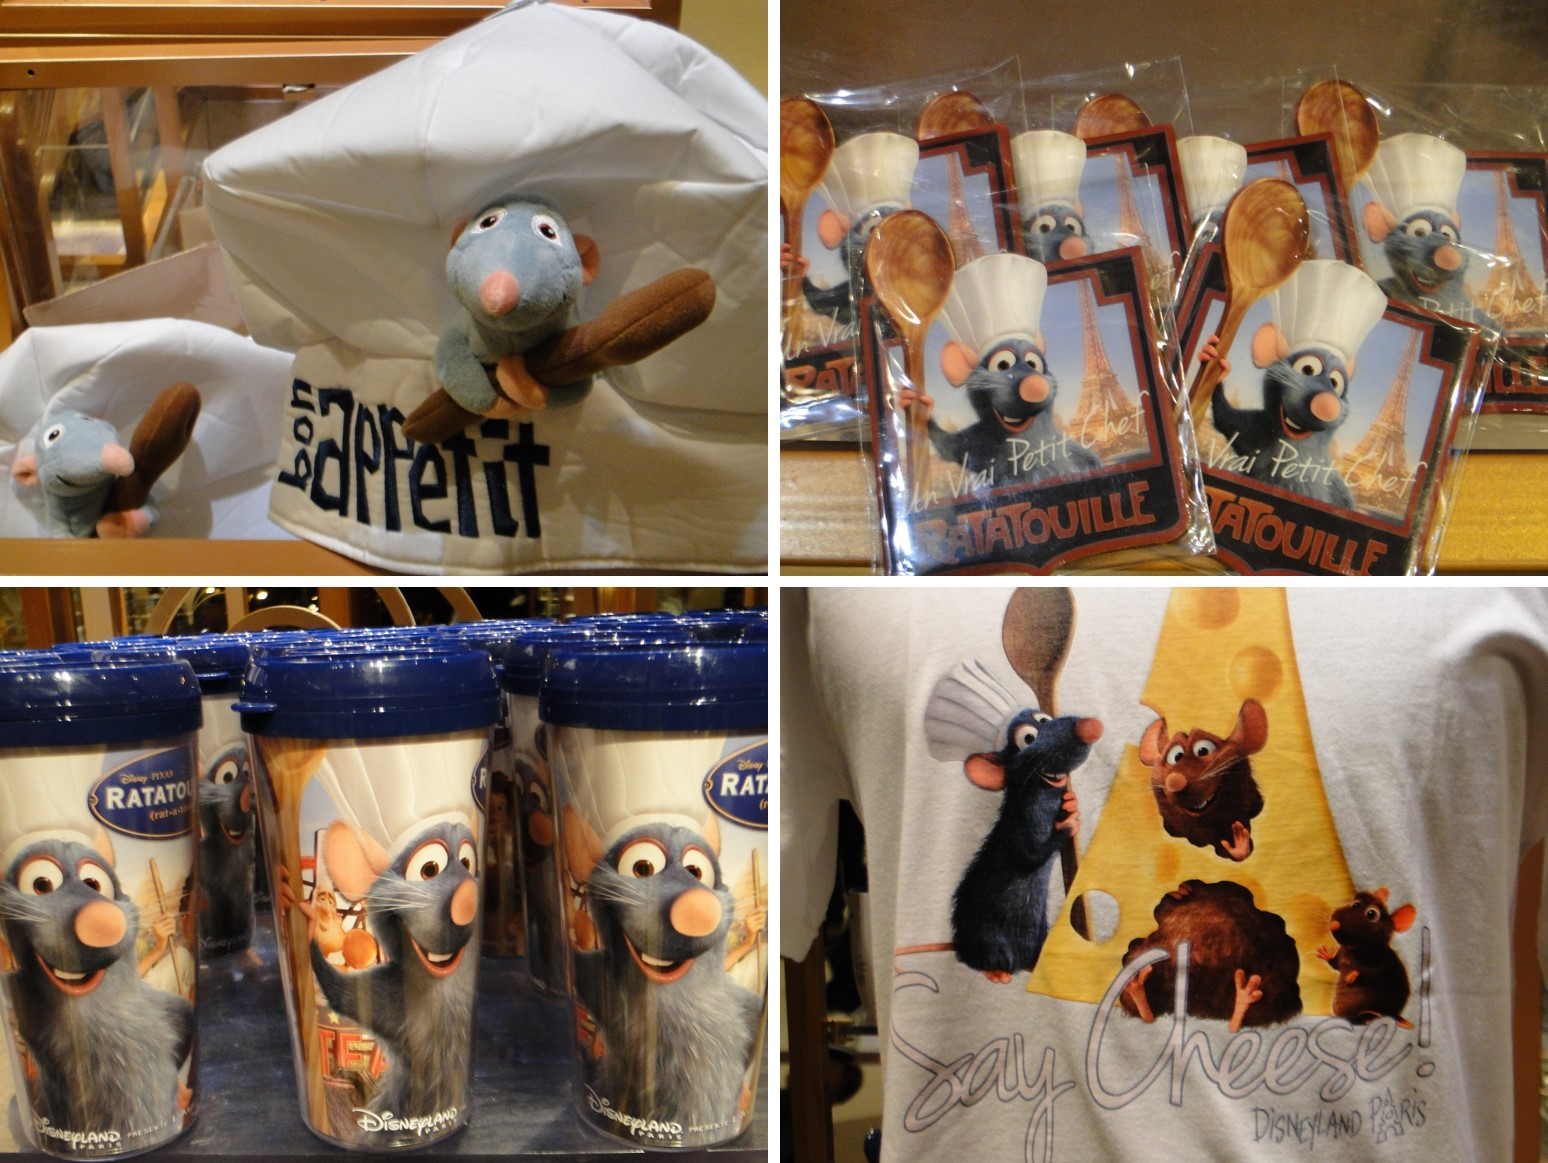 RATATOUILLE Attraction Disneyland Paris - Merchandising 4 photos - Go with the Blog